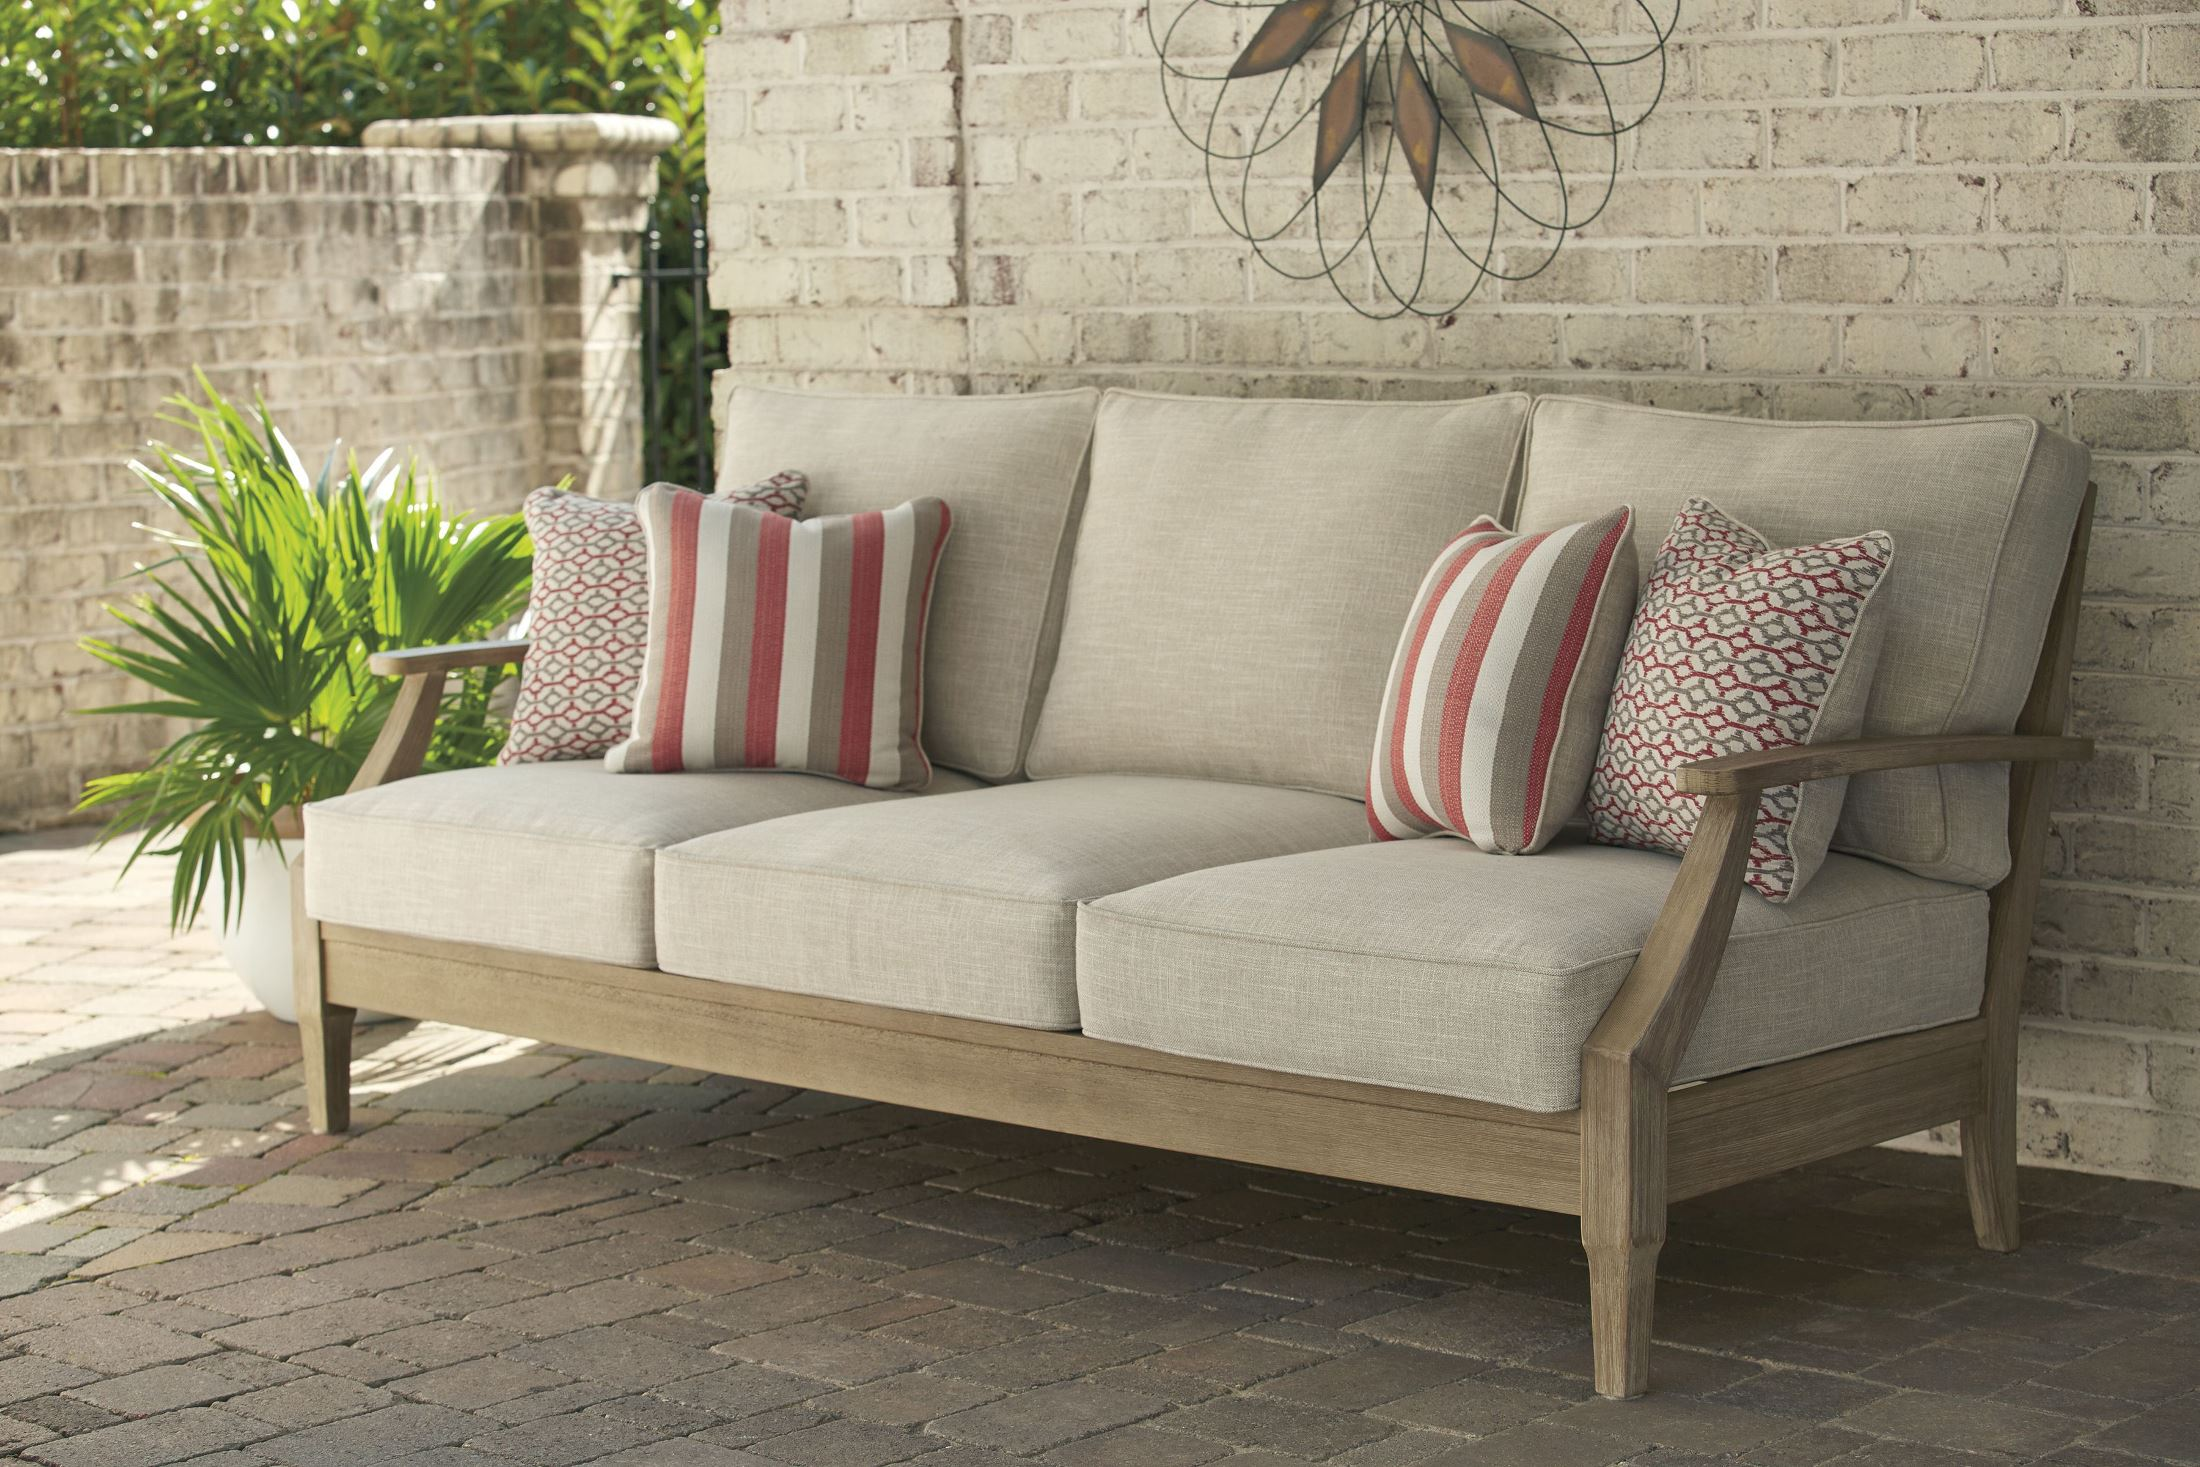 Signature Design by Ashley Clare View Beige Outdoor Sofa ... on Clare View Beige Outdoor Living Room id=31760